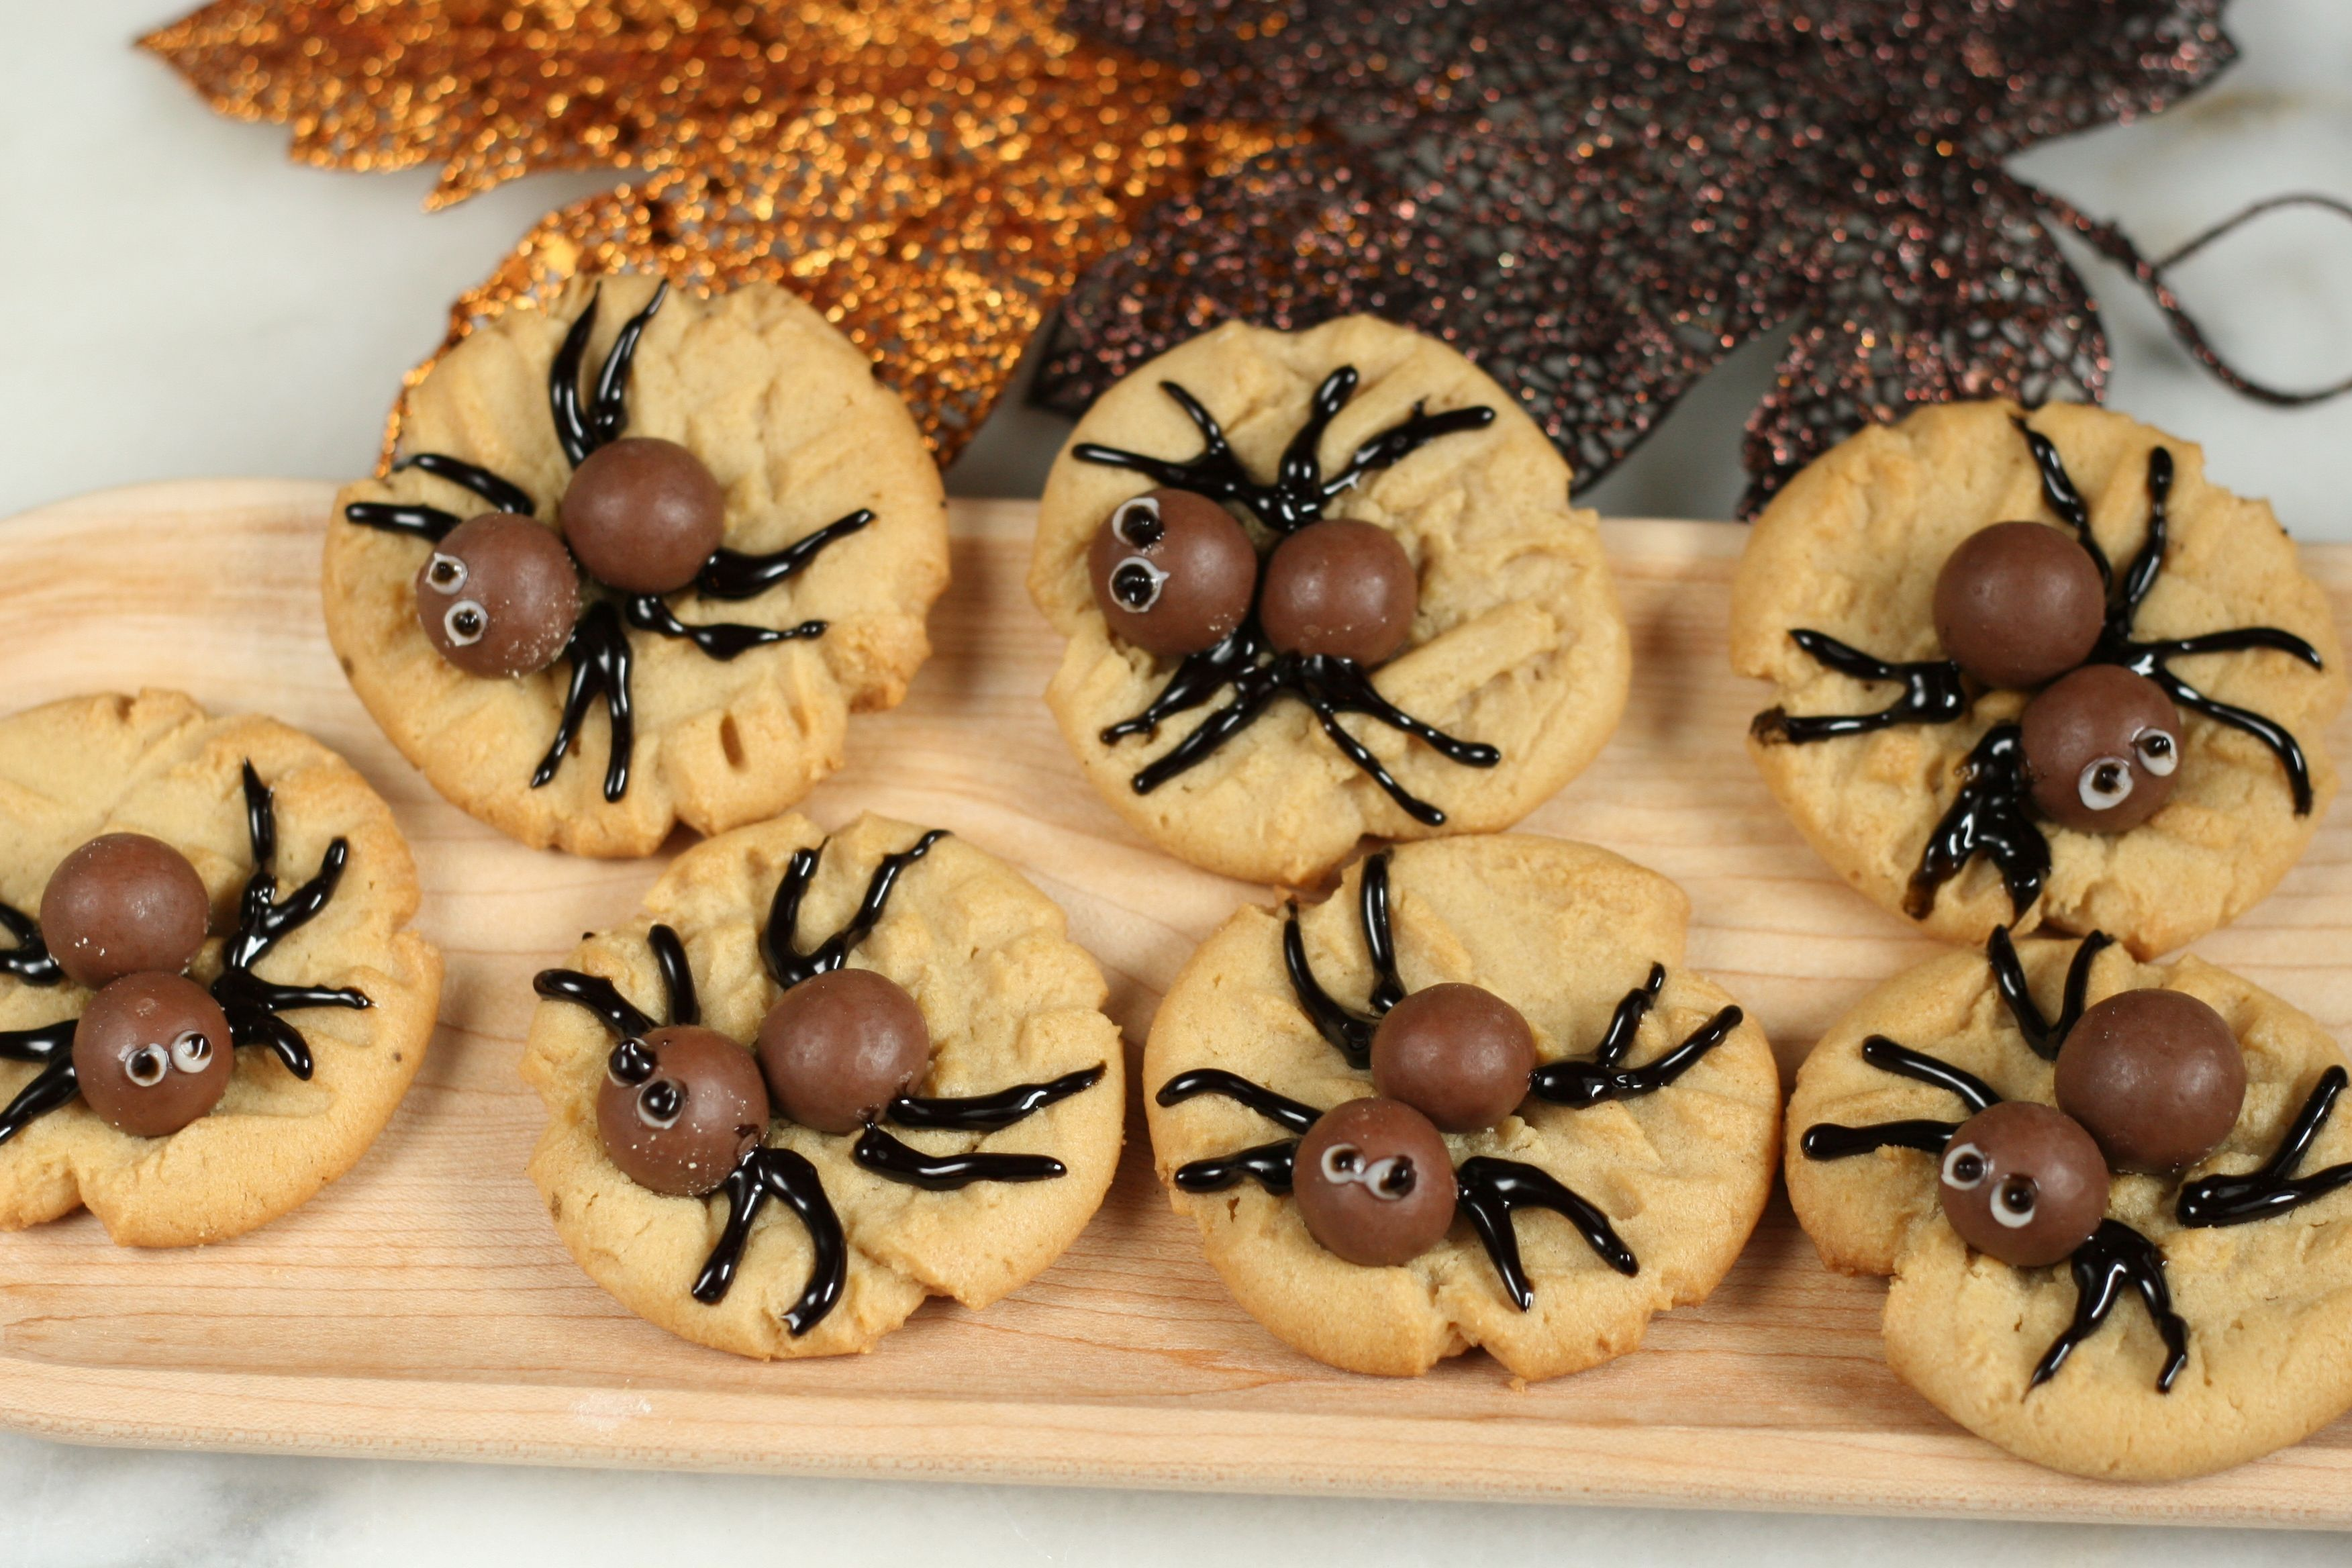 Spooky Peanut Butter Spider Cookies are crawling into your